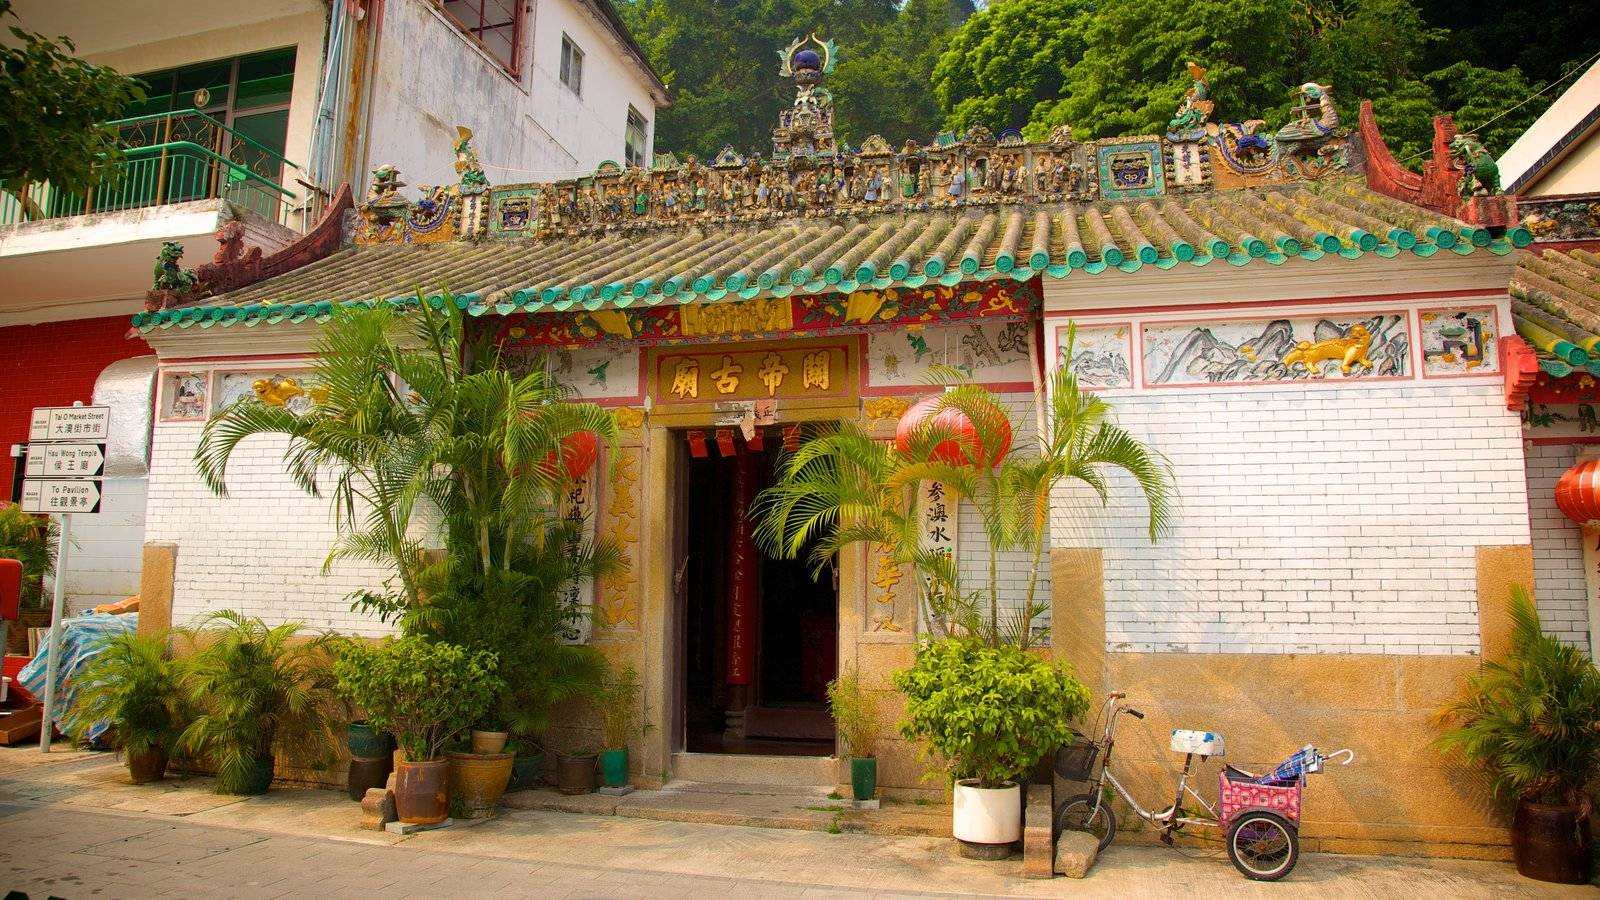 Tai O Fishing Village which includes a house and a small town or village